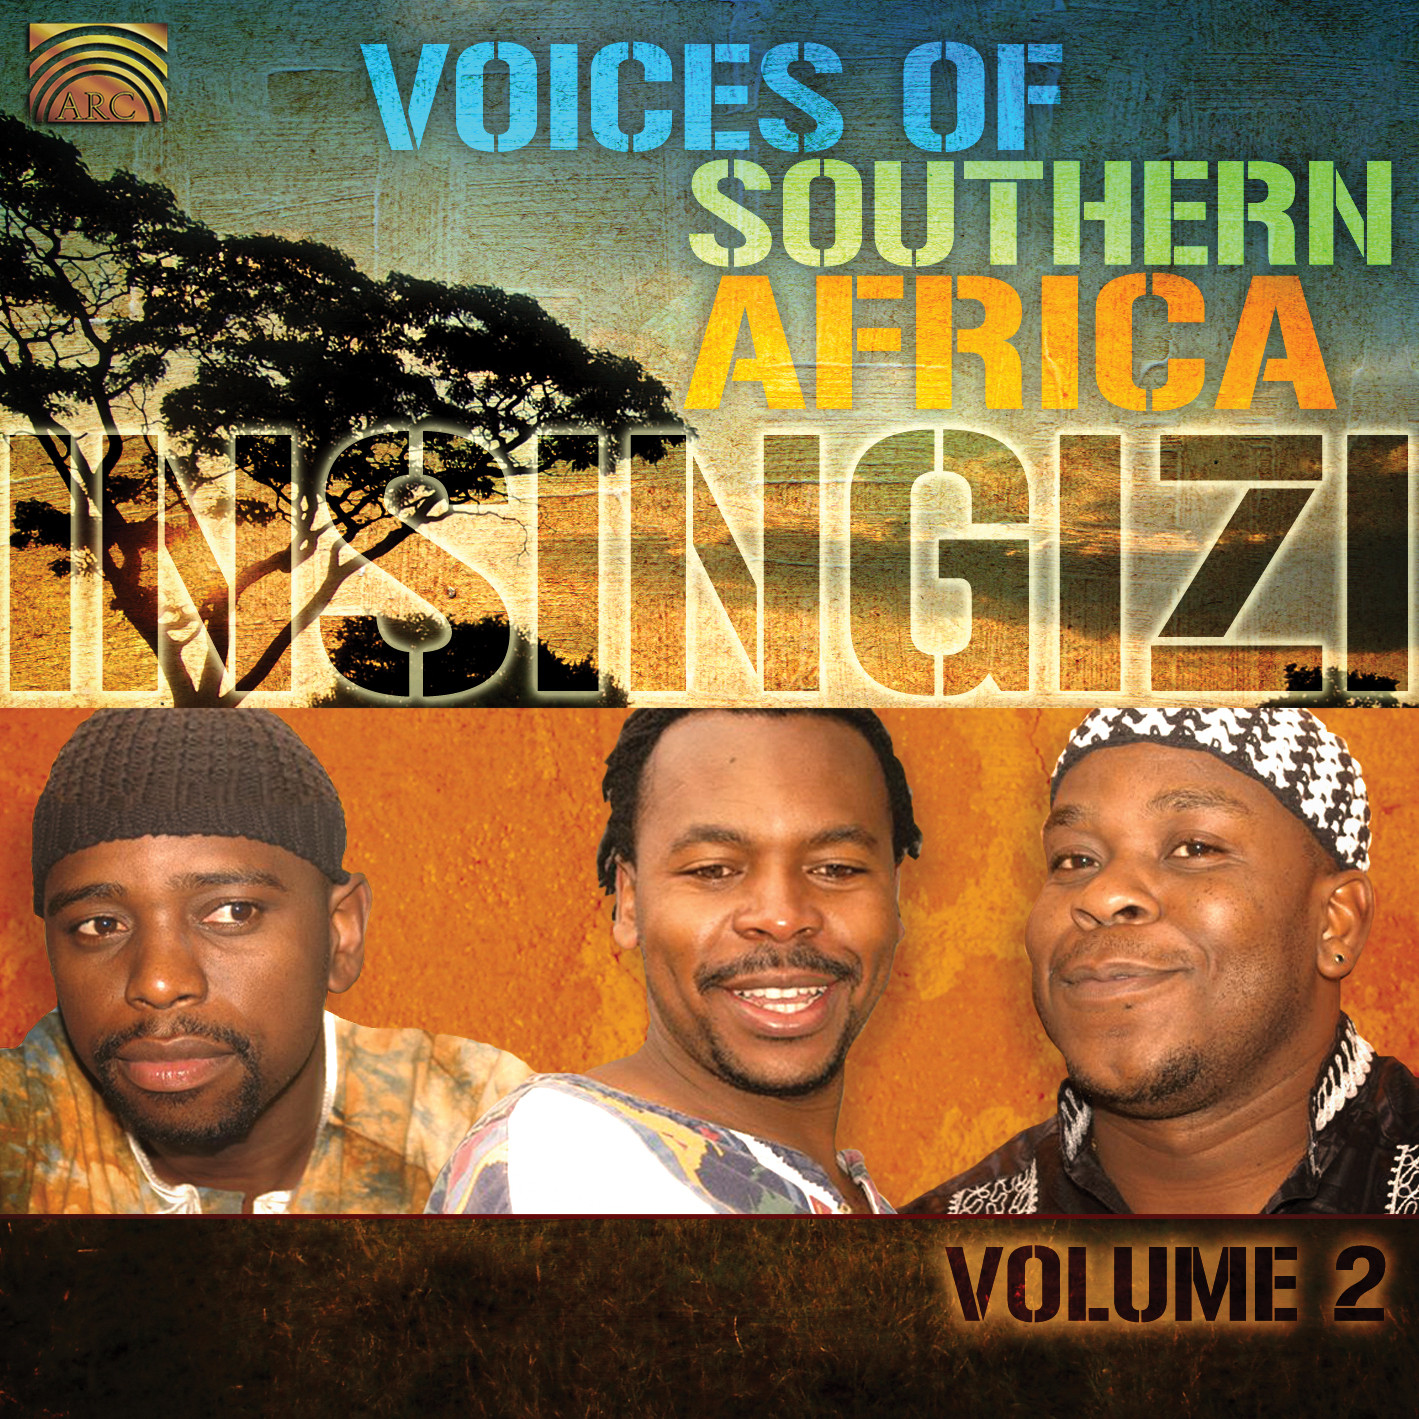 EUCD2243 Voices of Southern Africa, Vol. 2